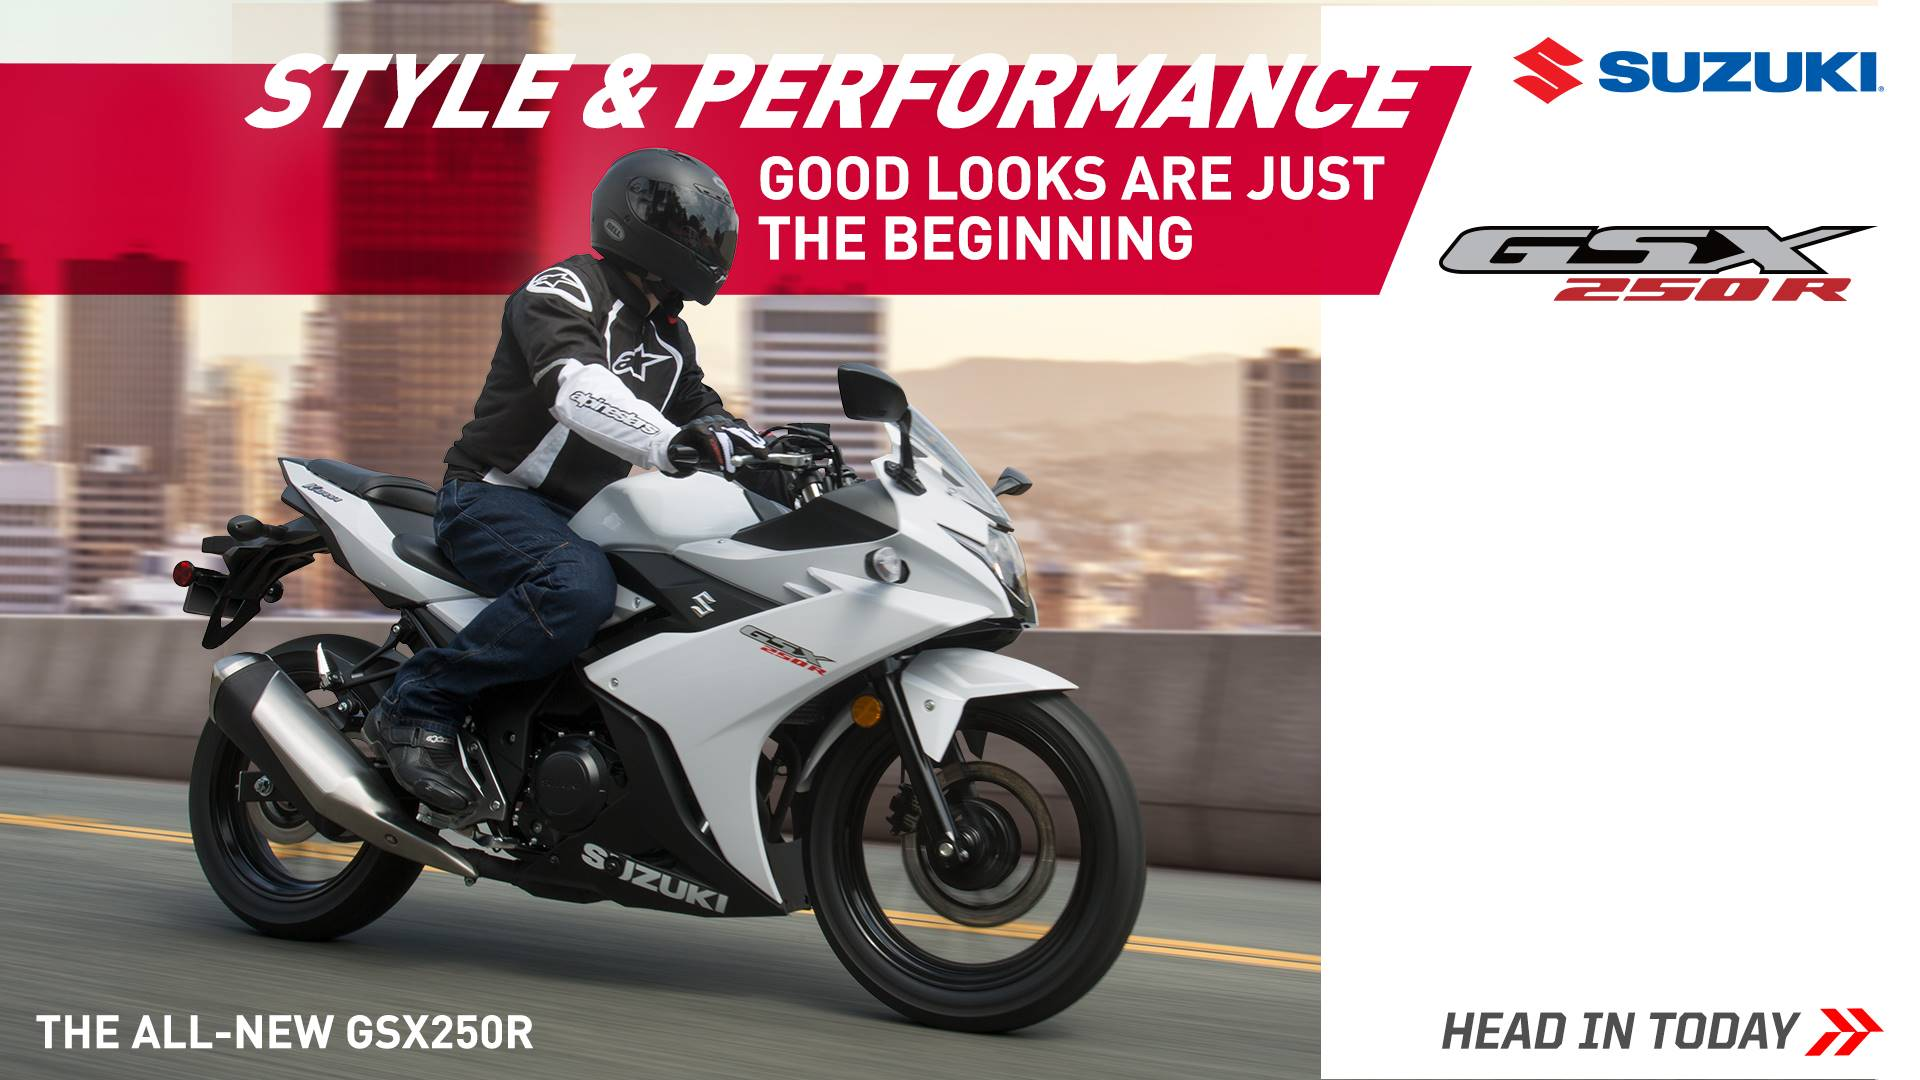 Suzuki Motor of America Inc. Suzuki Fall Suzukifest Sportbike and Standard Motorcycle Financing as Low as 1.99% APR for 36 Months or Customer Cash Offer